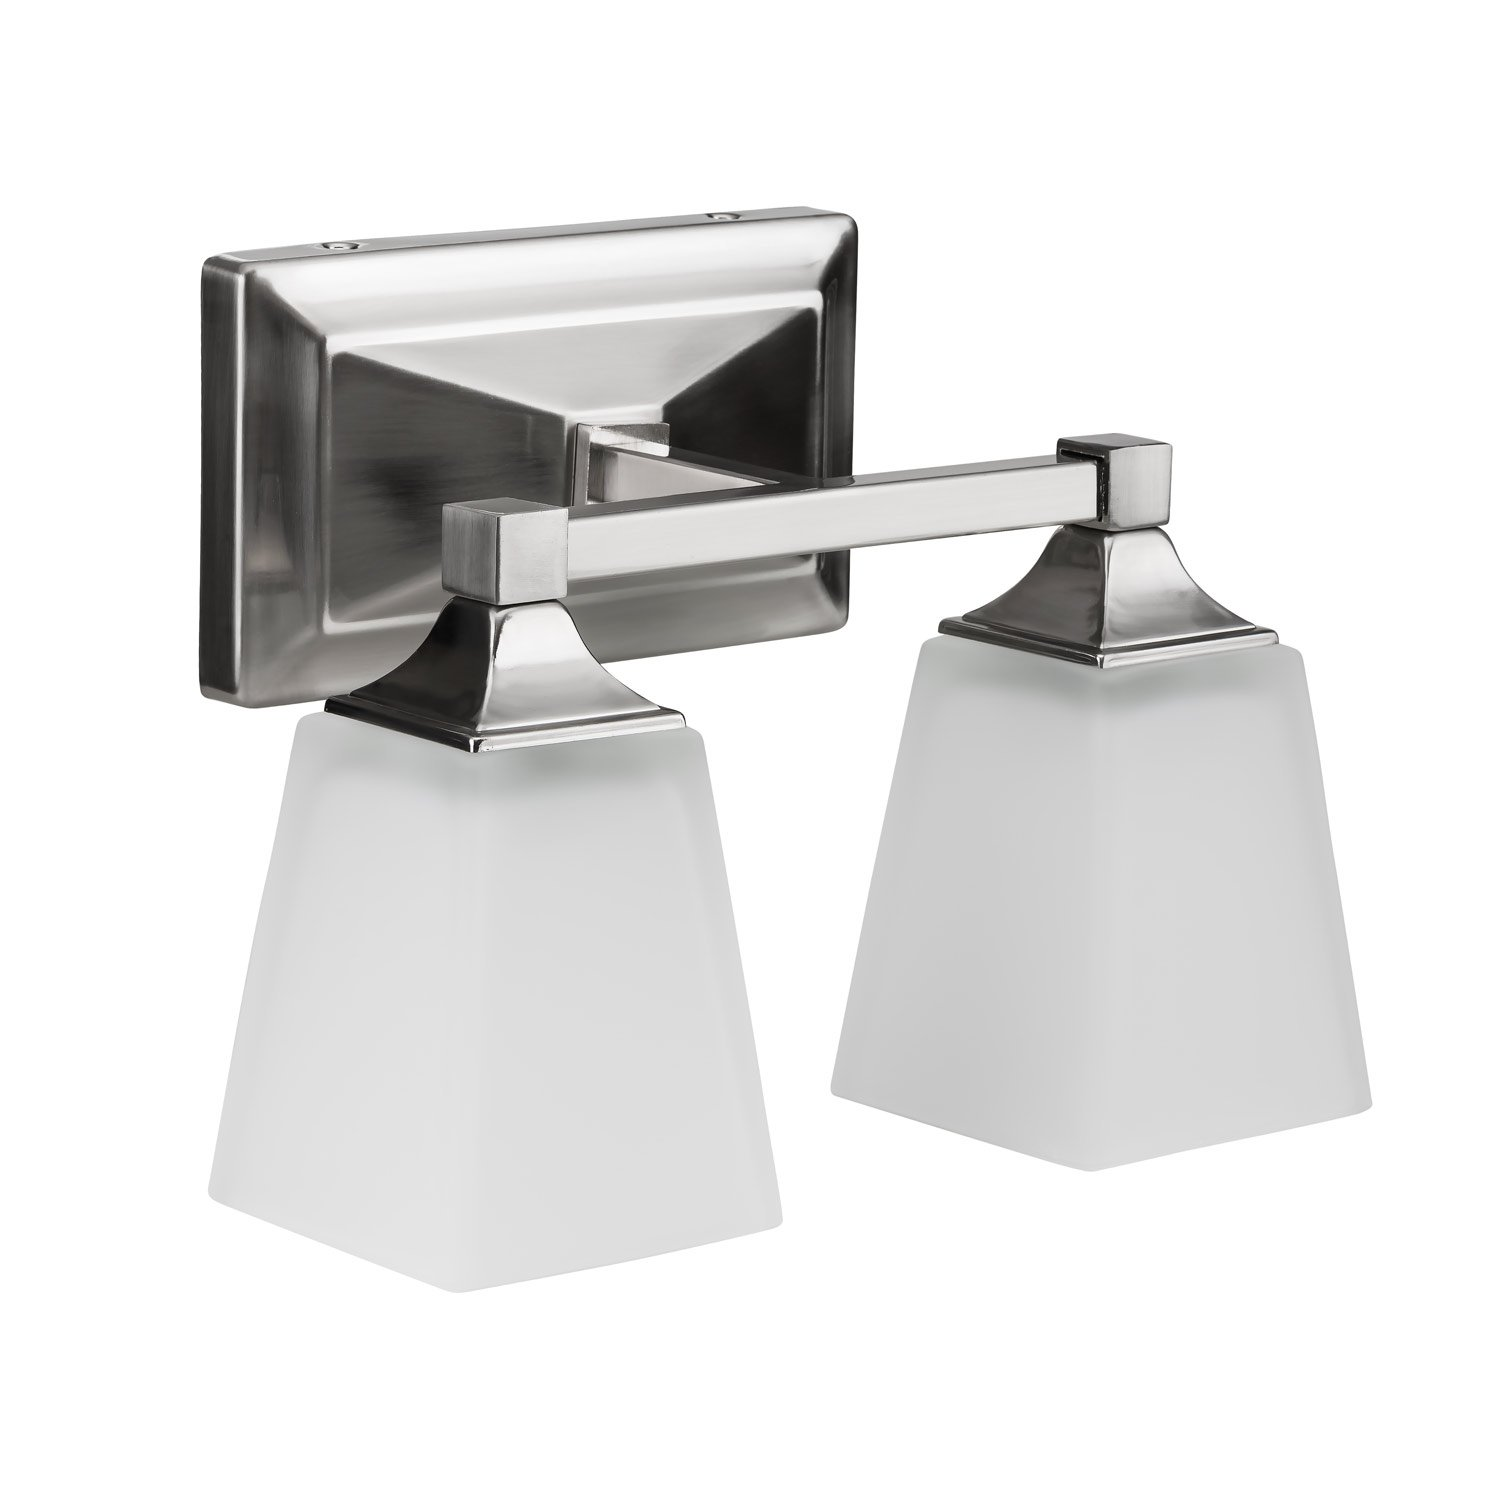 LB74110 LED 2-Light Bath Vanity light, Antique Brushed Nickel, 15-Watt (120W Equiv.) 3000K Warm White, 1050 Lumens, 12'' W, LED Wall Sconce Fixture, ETL and ENERGY STAR Listed